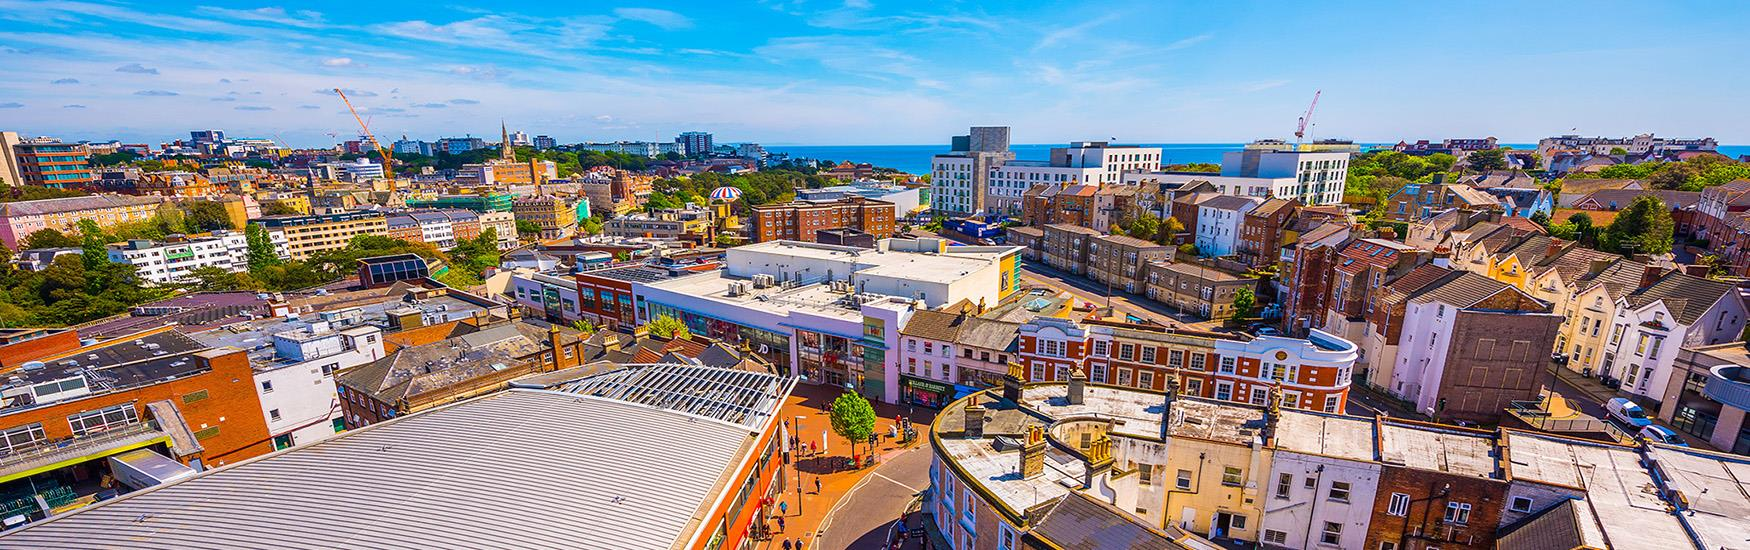 Beautiful shot of Bournemouth town centre taken from an elevated position show casing the destination